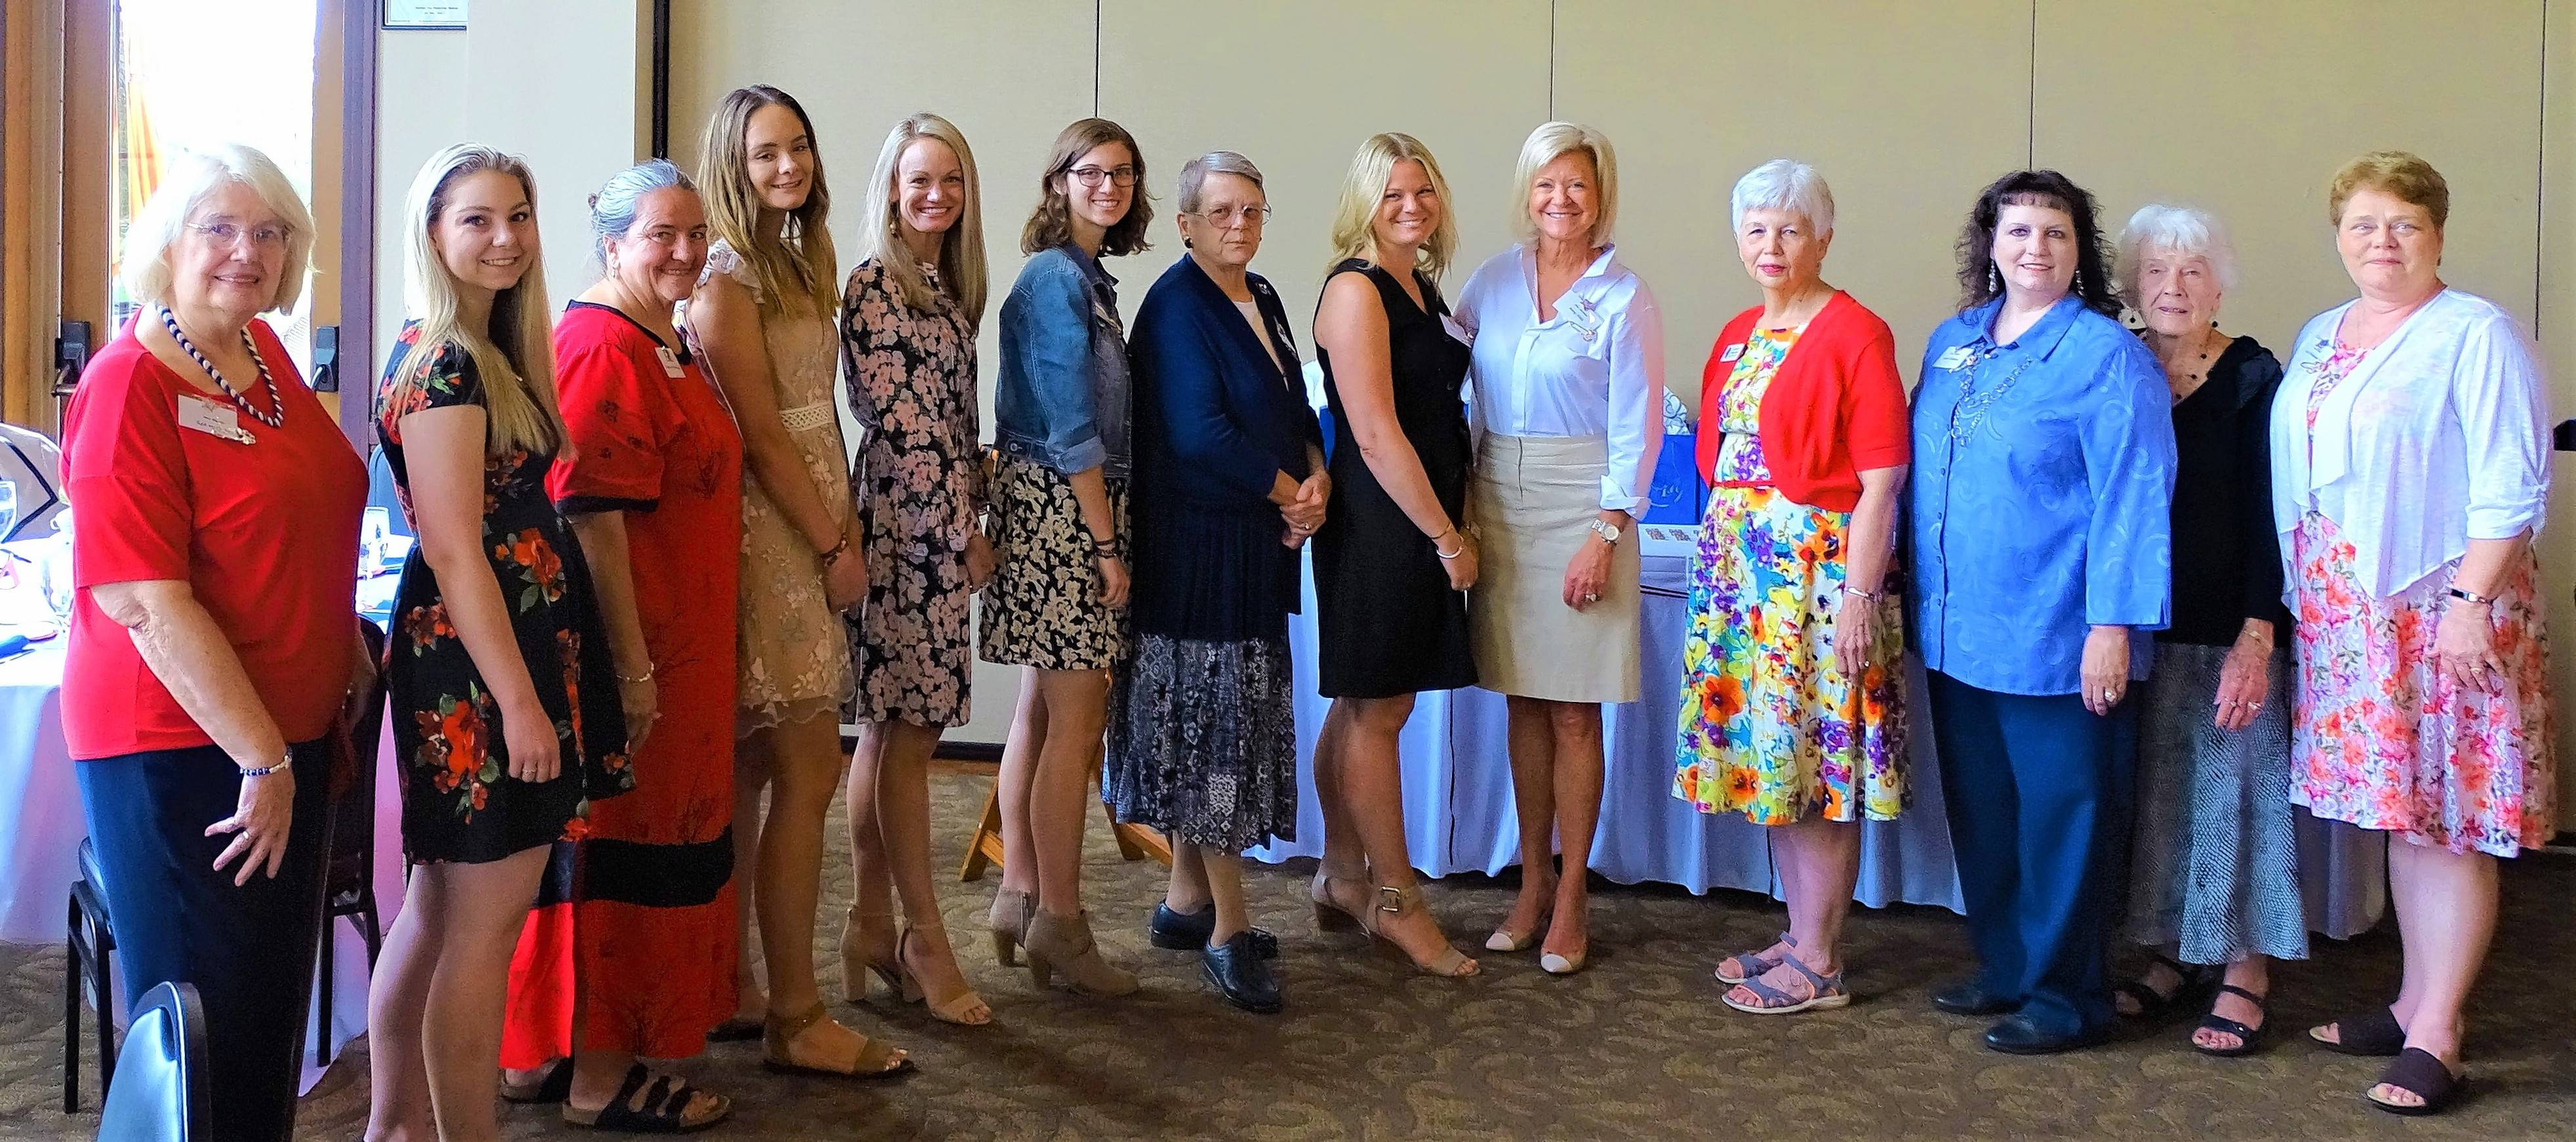 New members are welcomed at the Fox River Valley DAR's annual meeting. Pictured, from left, are Gail McCusker, Brooke Wold, Virginia Werthwein, Hanna Vojtech, Virginia Pondel, Emily McCusker, Mary Lischalk, Amy and Mary Holz, Marilyn Foley, Lynne DiSimoni, Joyce Dennison and Lola Blakeman.